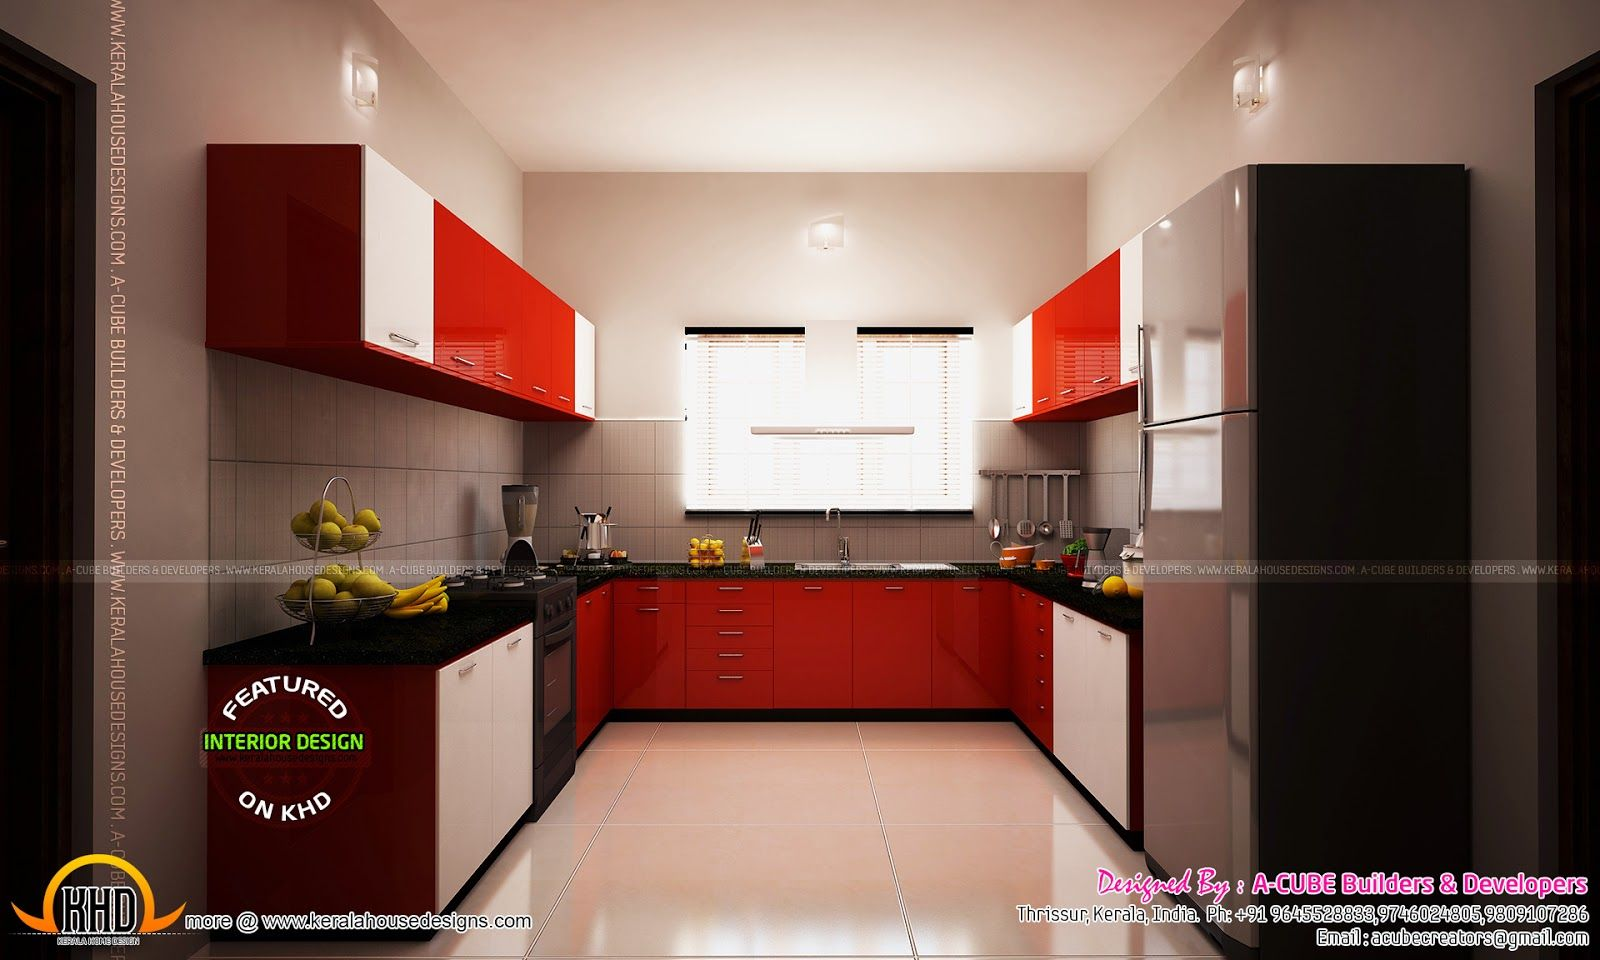 Modren Kitchen Design Kerala Houses Images With Style T In